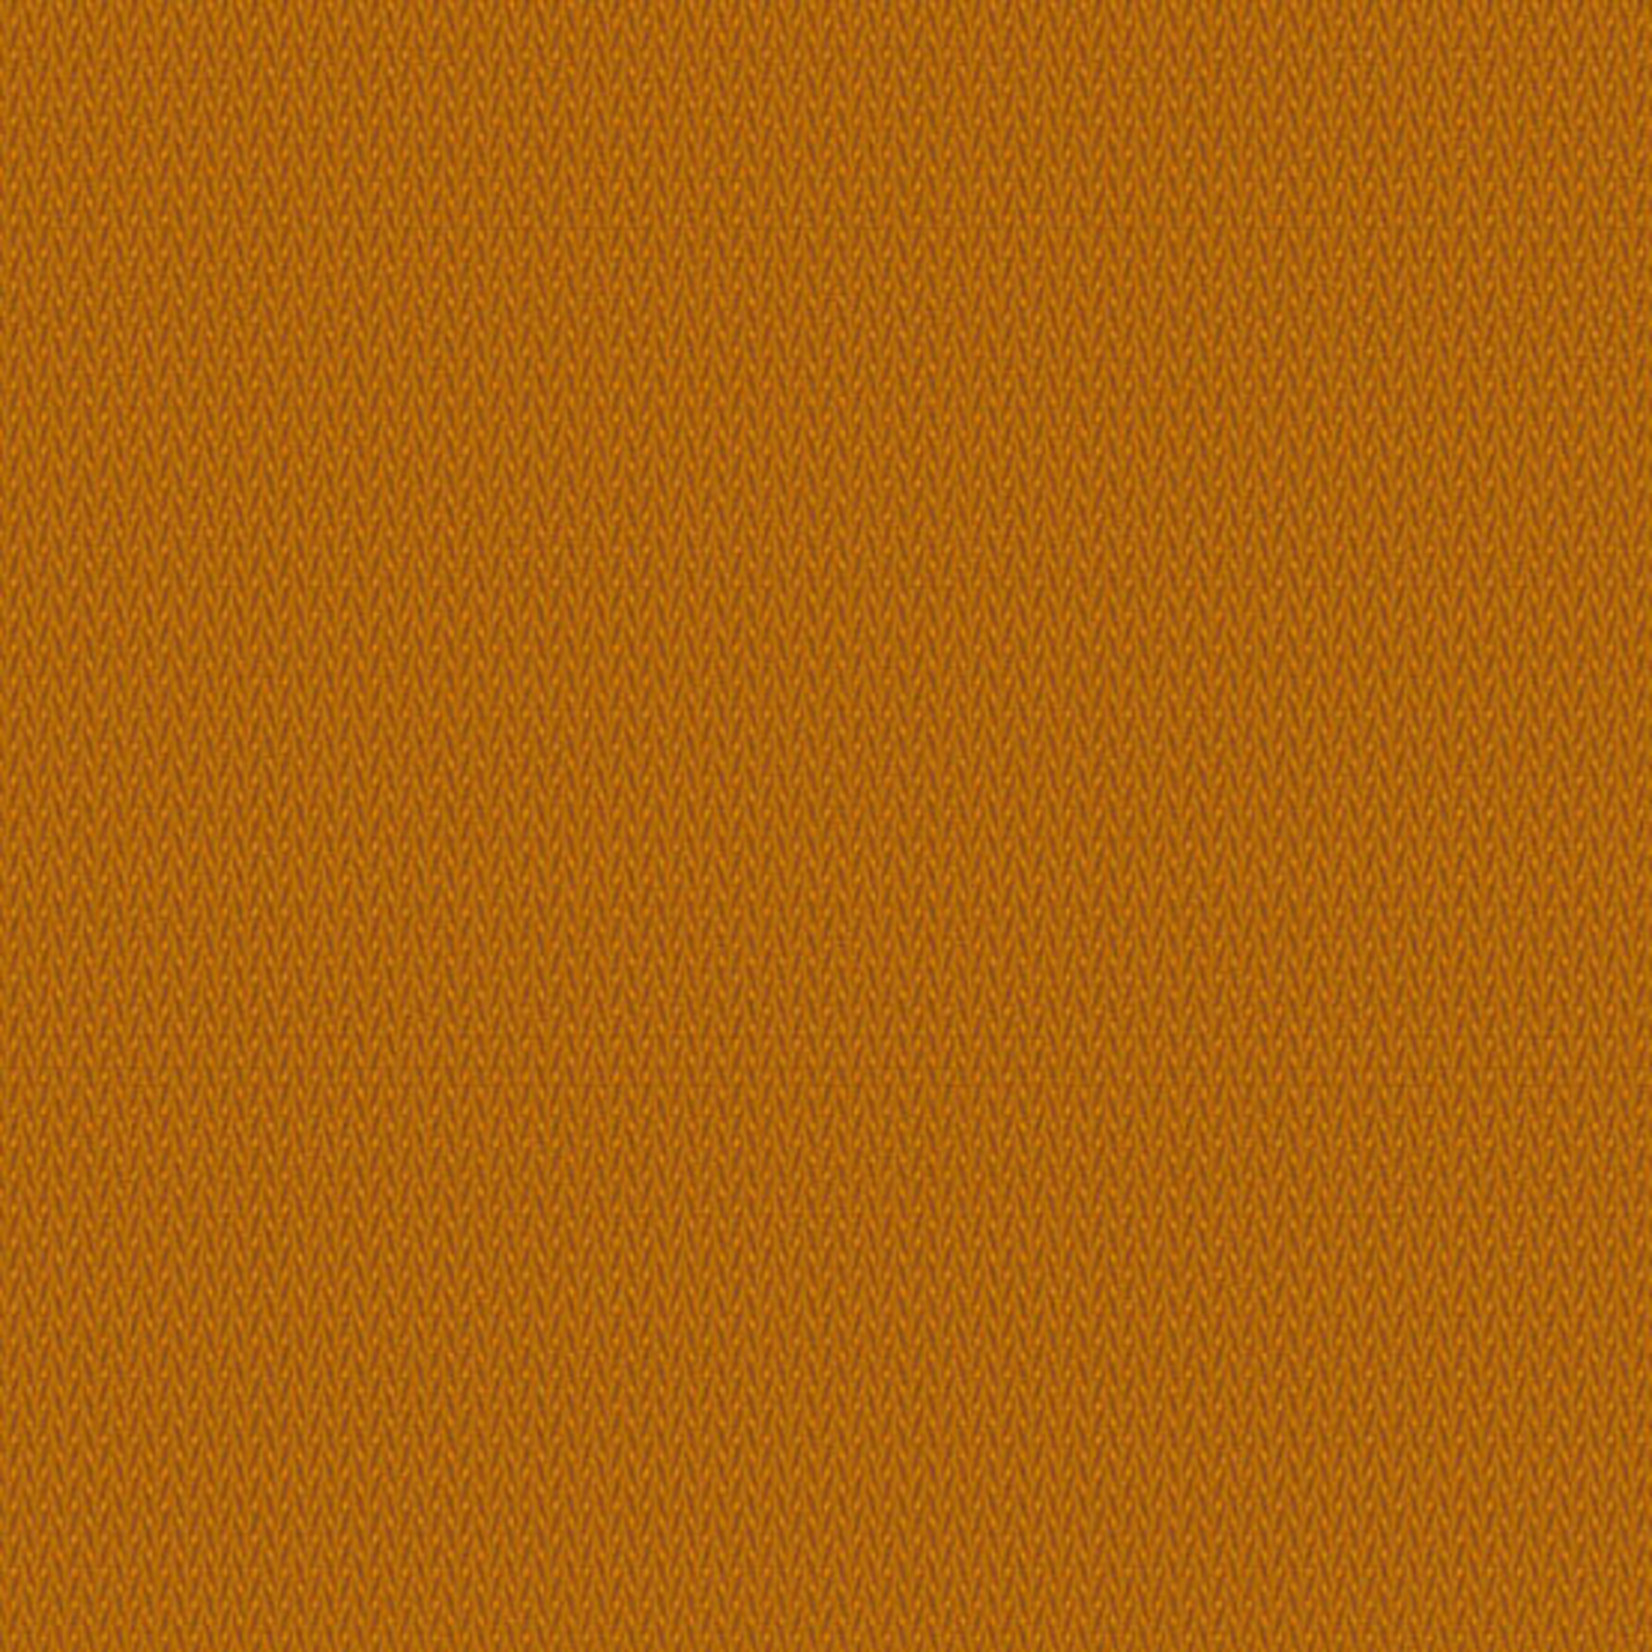 Edyta Sitar Secret Stash - Warms, Elegant Burlap, Orange (8626-O) $0.20 per cm or $20/m